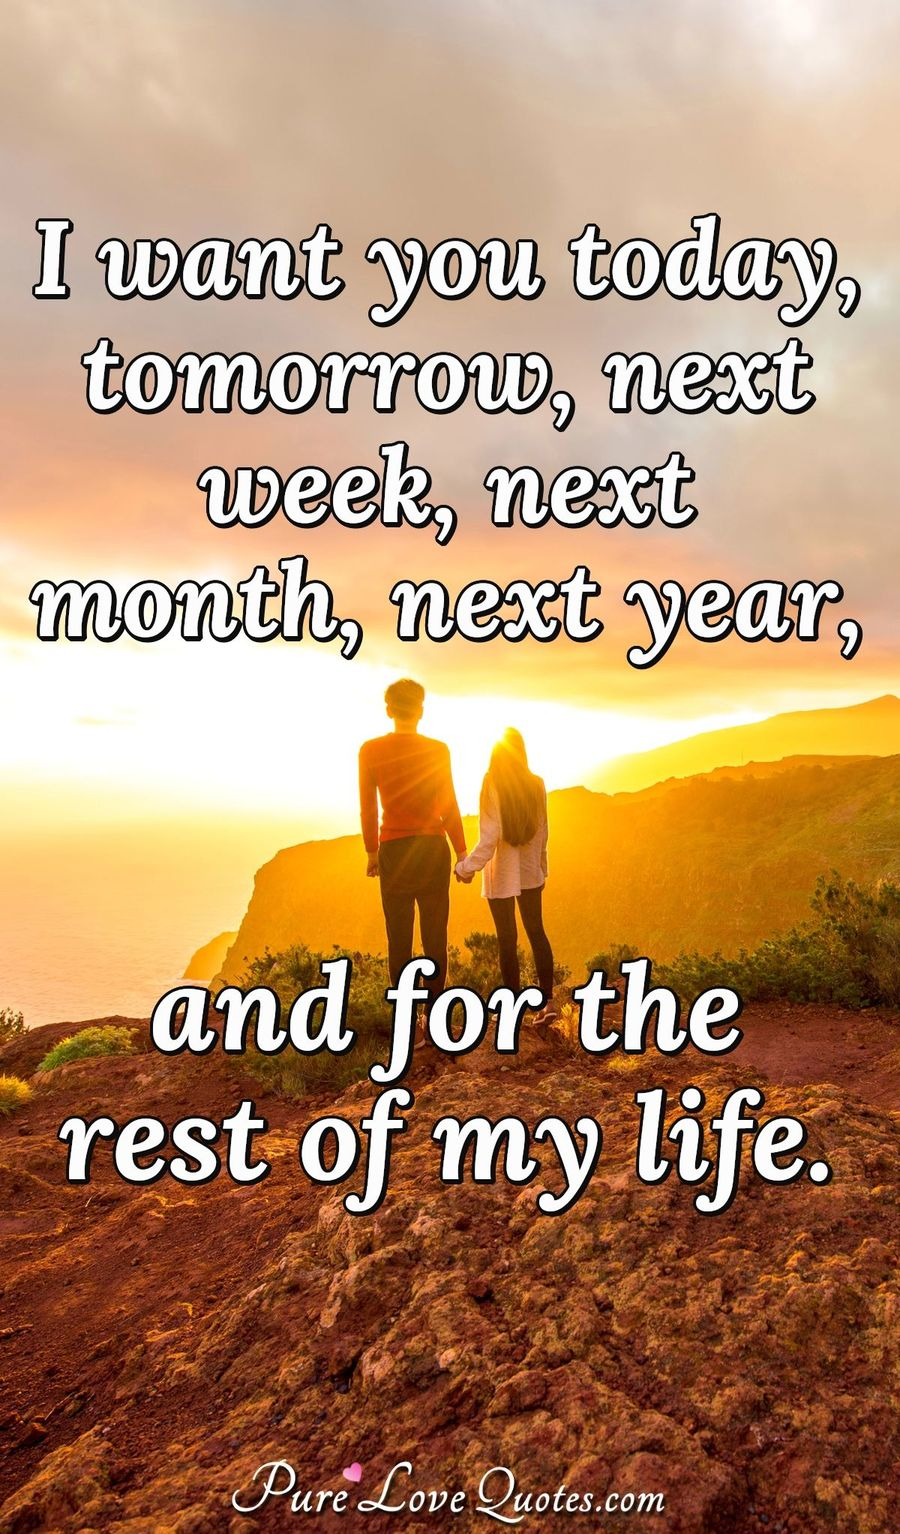 I want you today, tomorrow, next week, next month, next year, and for the rest of my life. - Anonymous